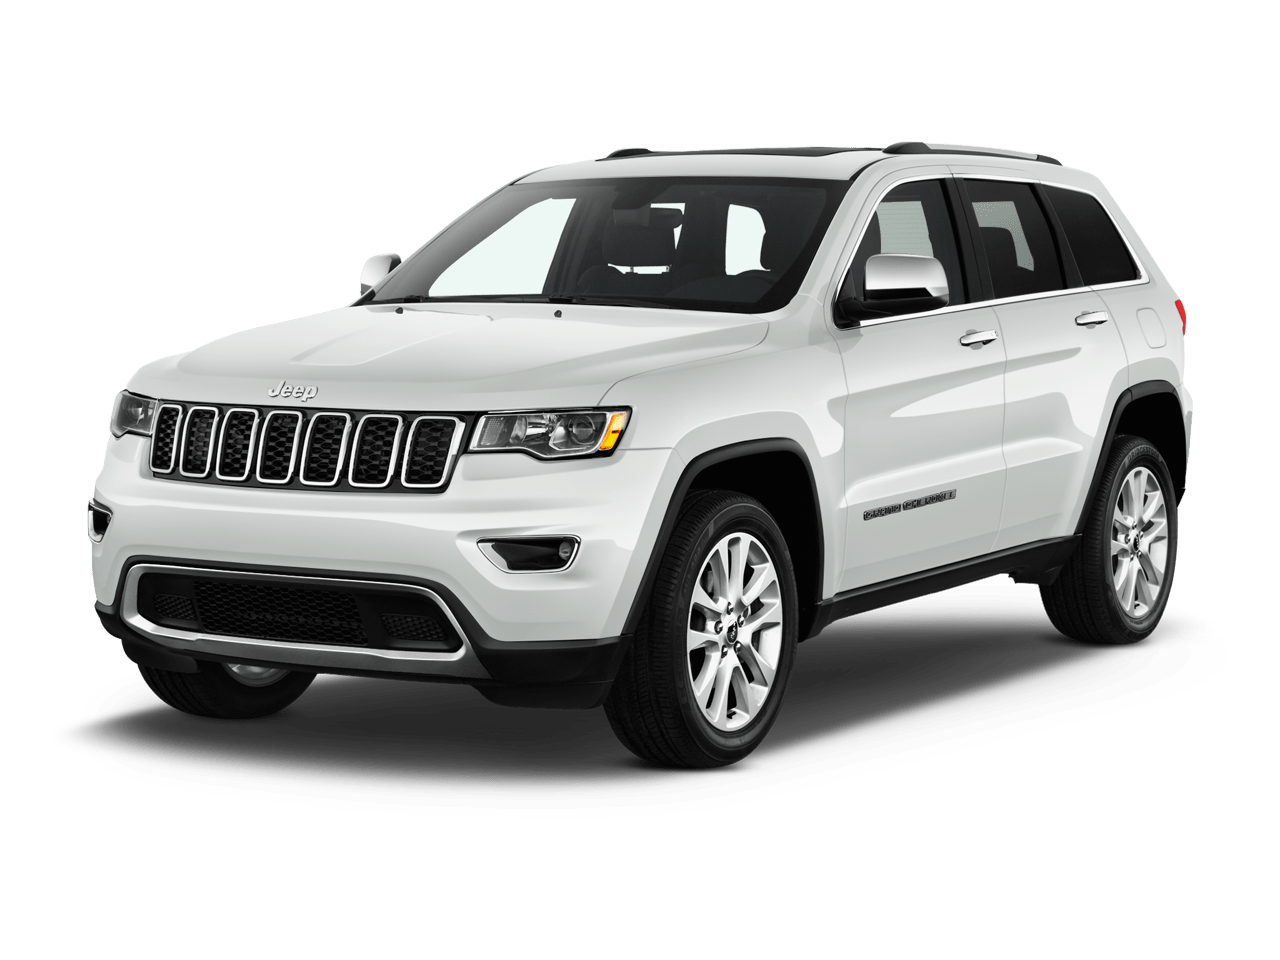 hight resolution of new 2019 jeep grand cherokee limited in durand mi randy wise auto jeep 3 8l diagram of jeep 3 8l v6 engine electrical